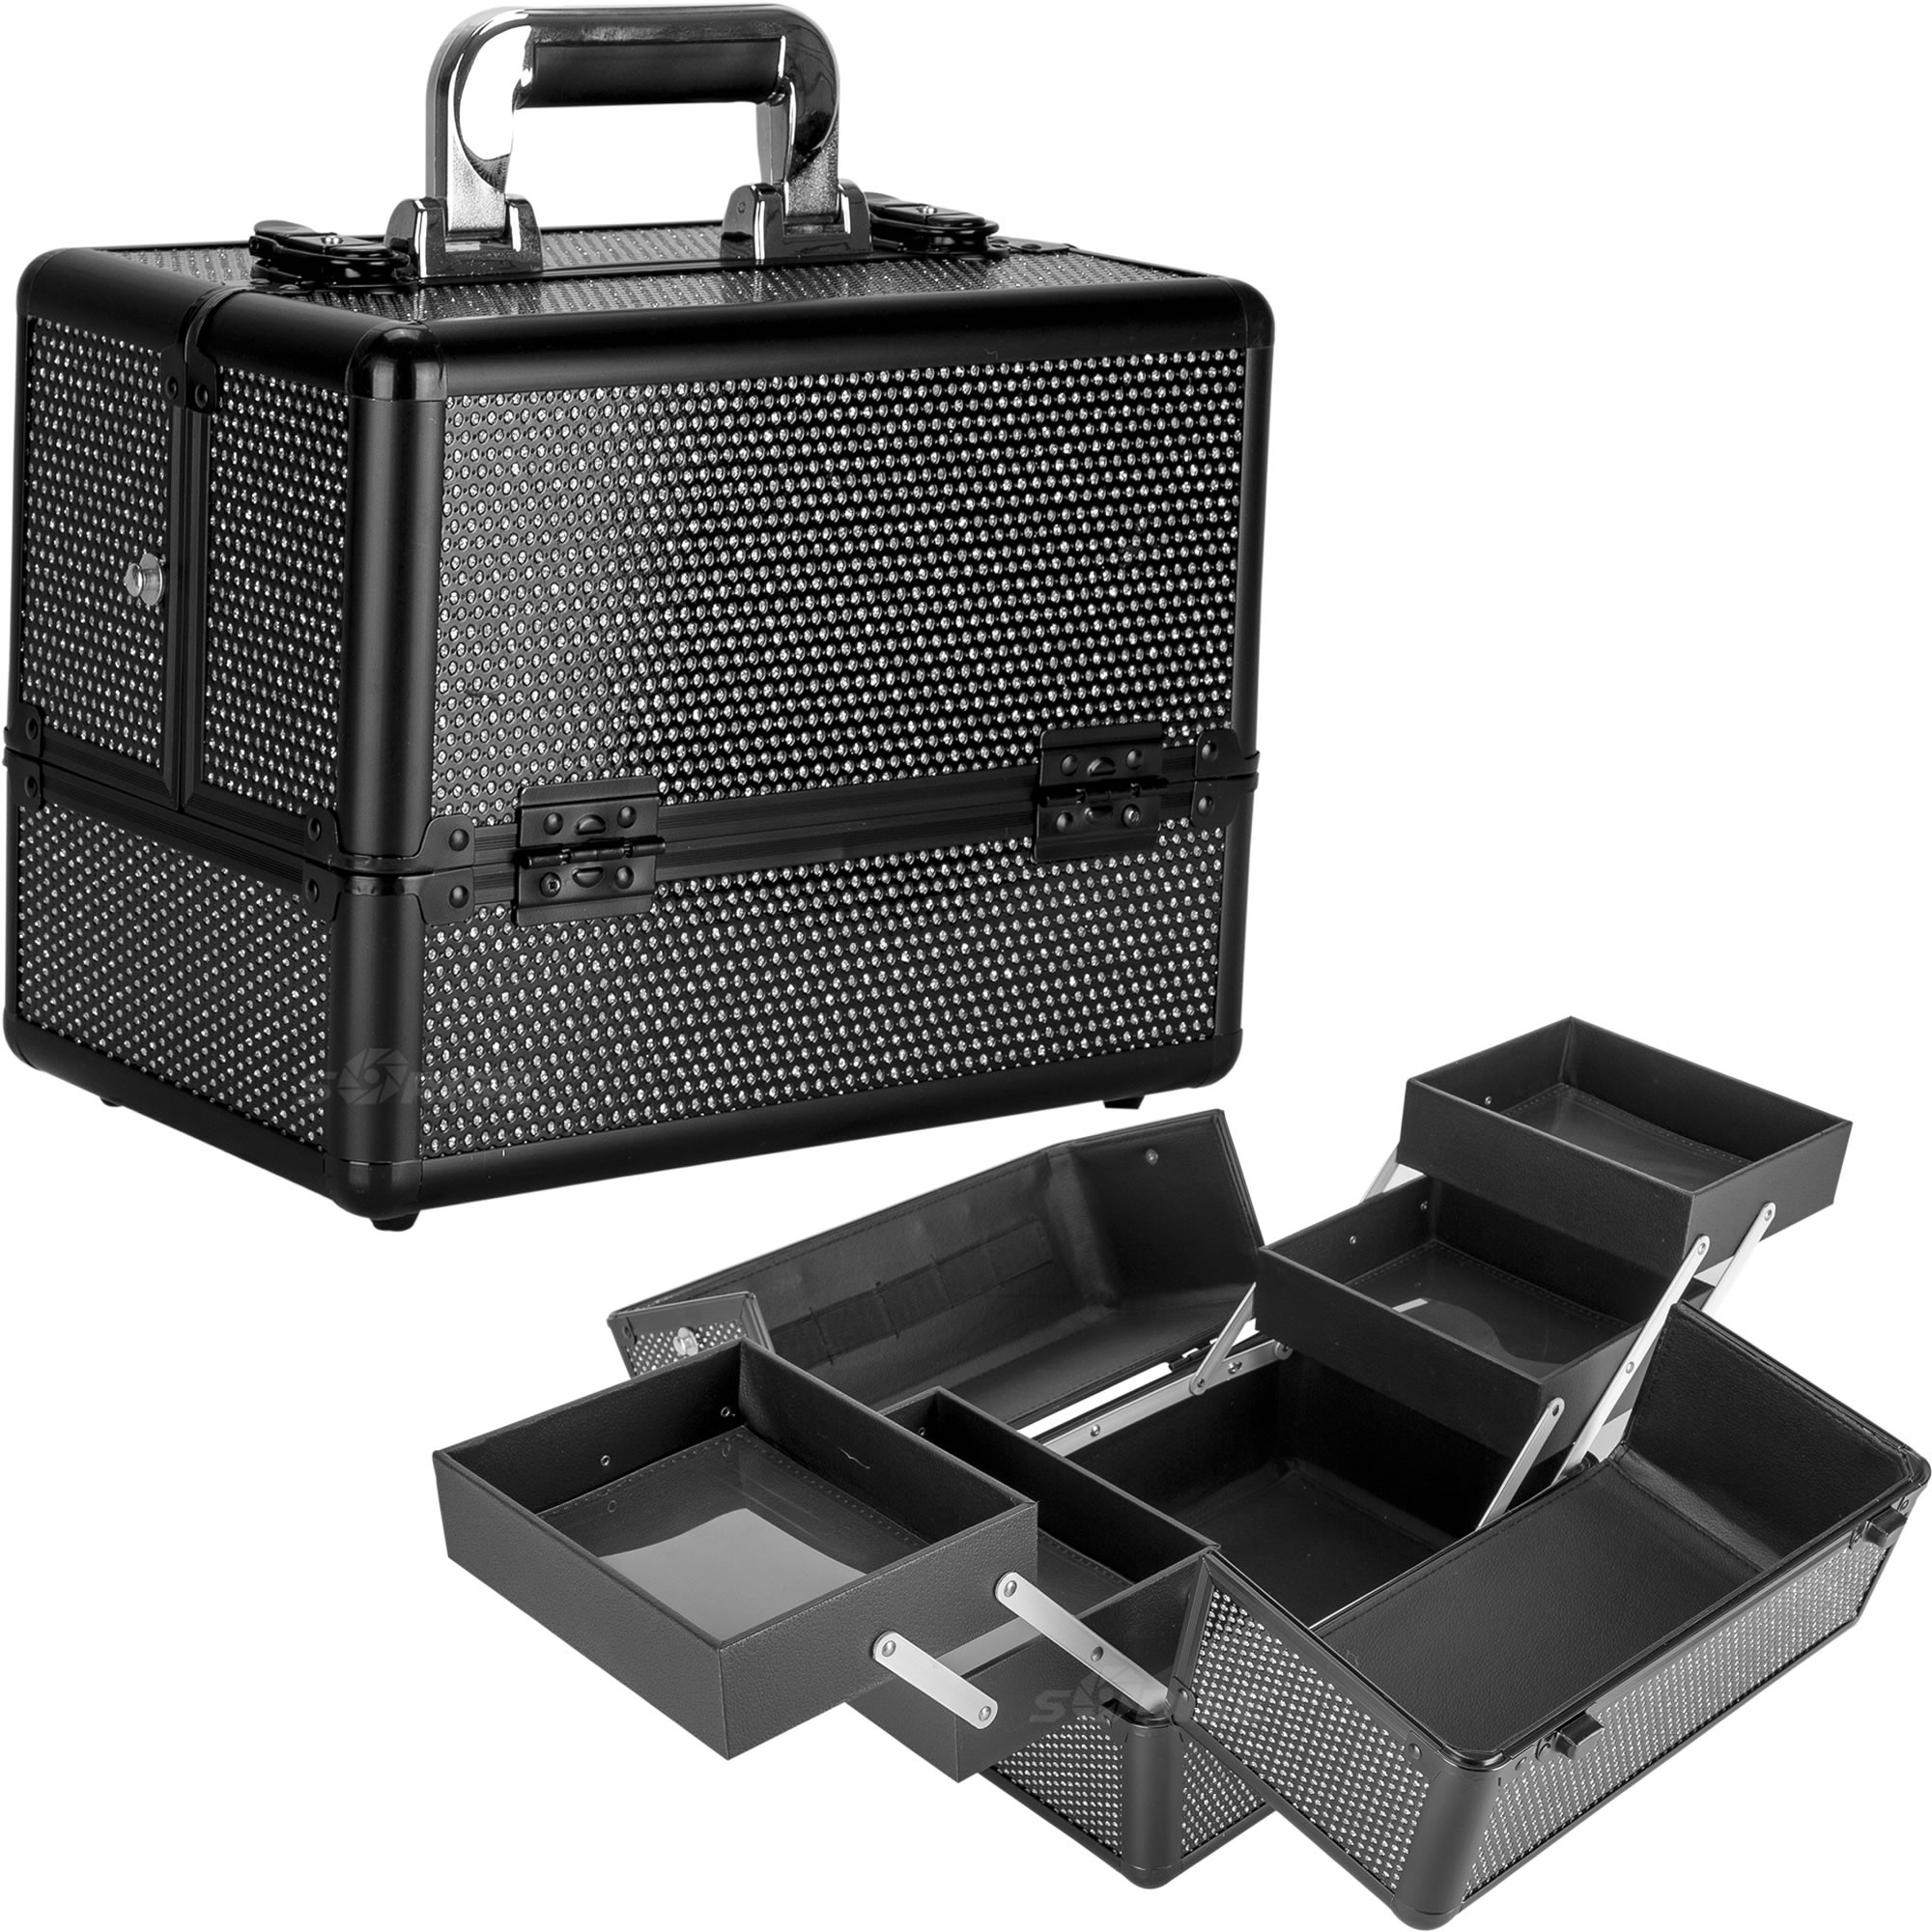 Details about Makeup Cosmetic Case 2 Tier Accordion Tray C4211 Portable  Beauty Krystal Storage